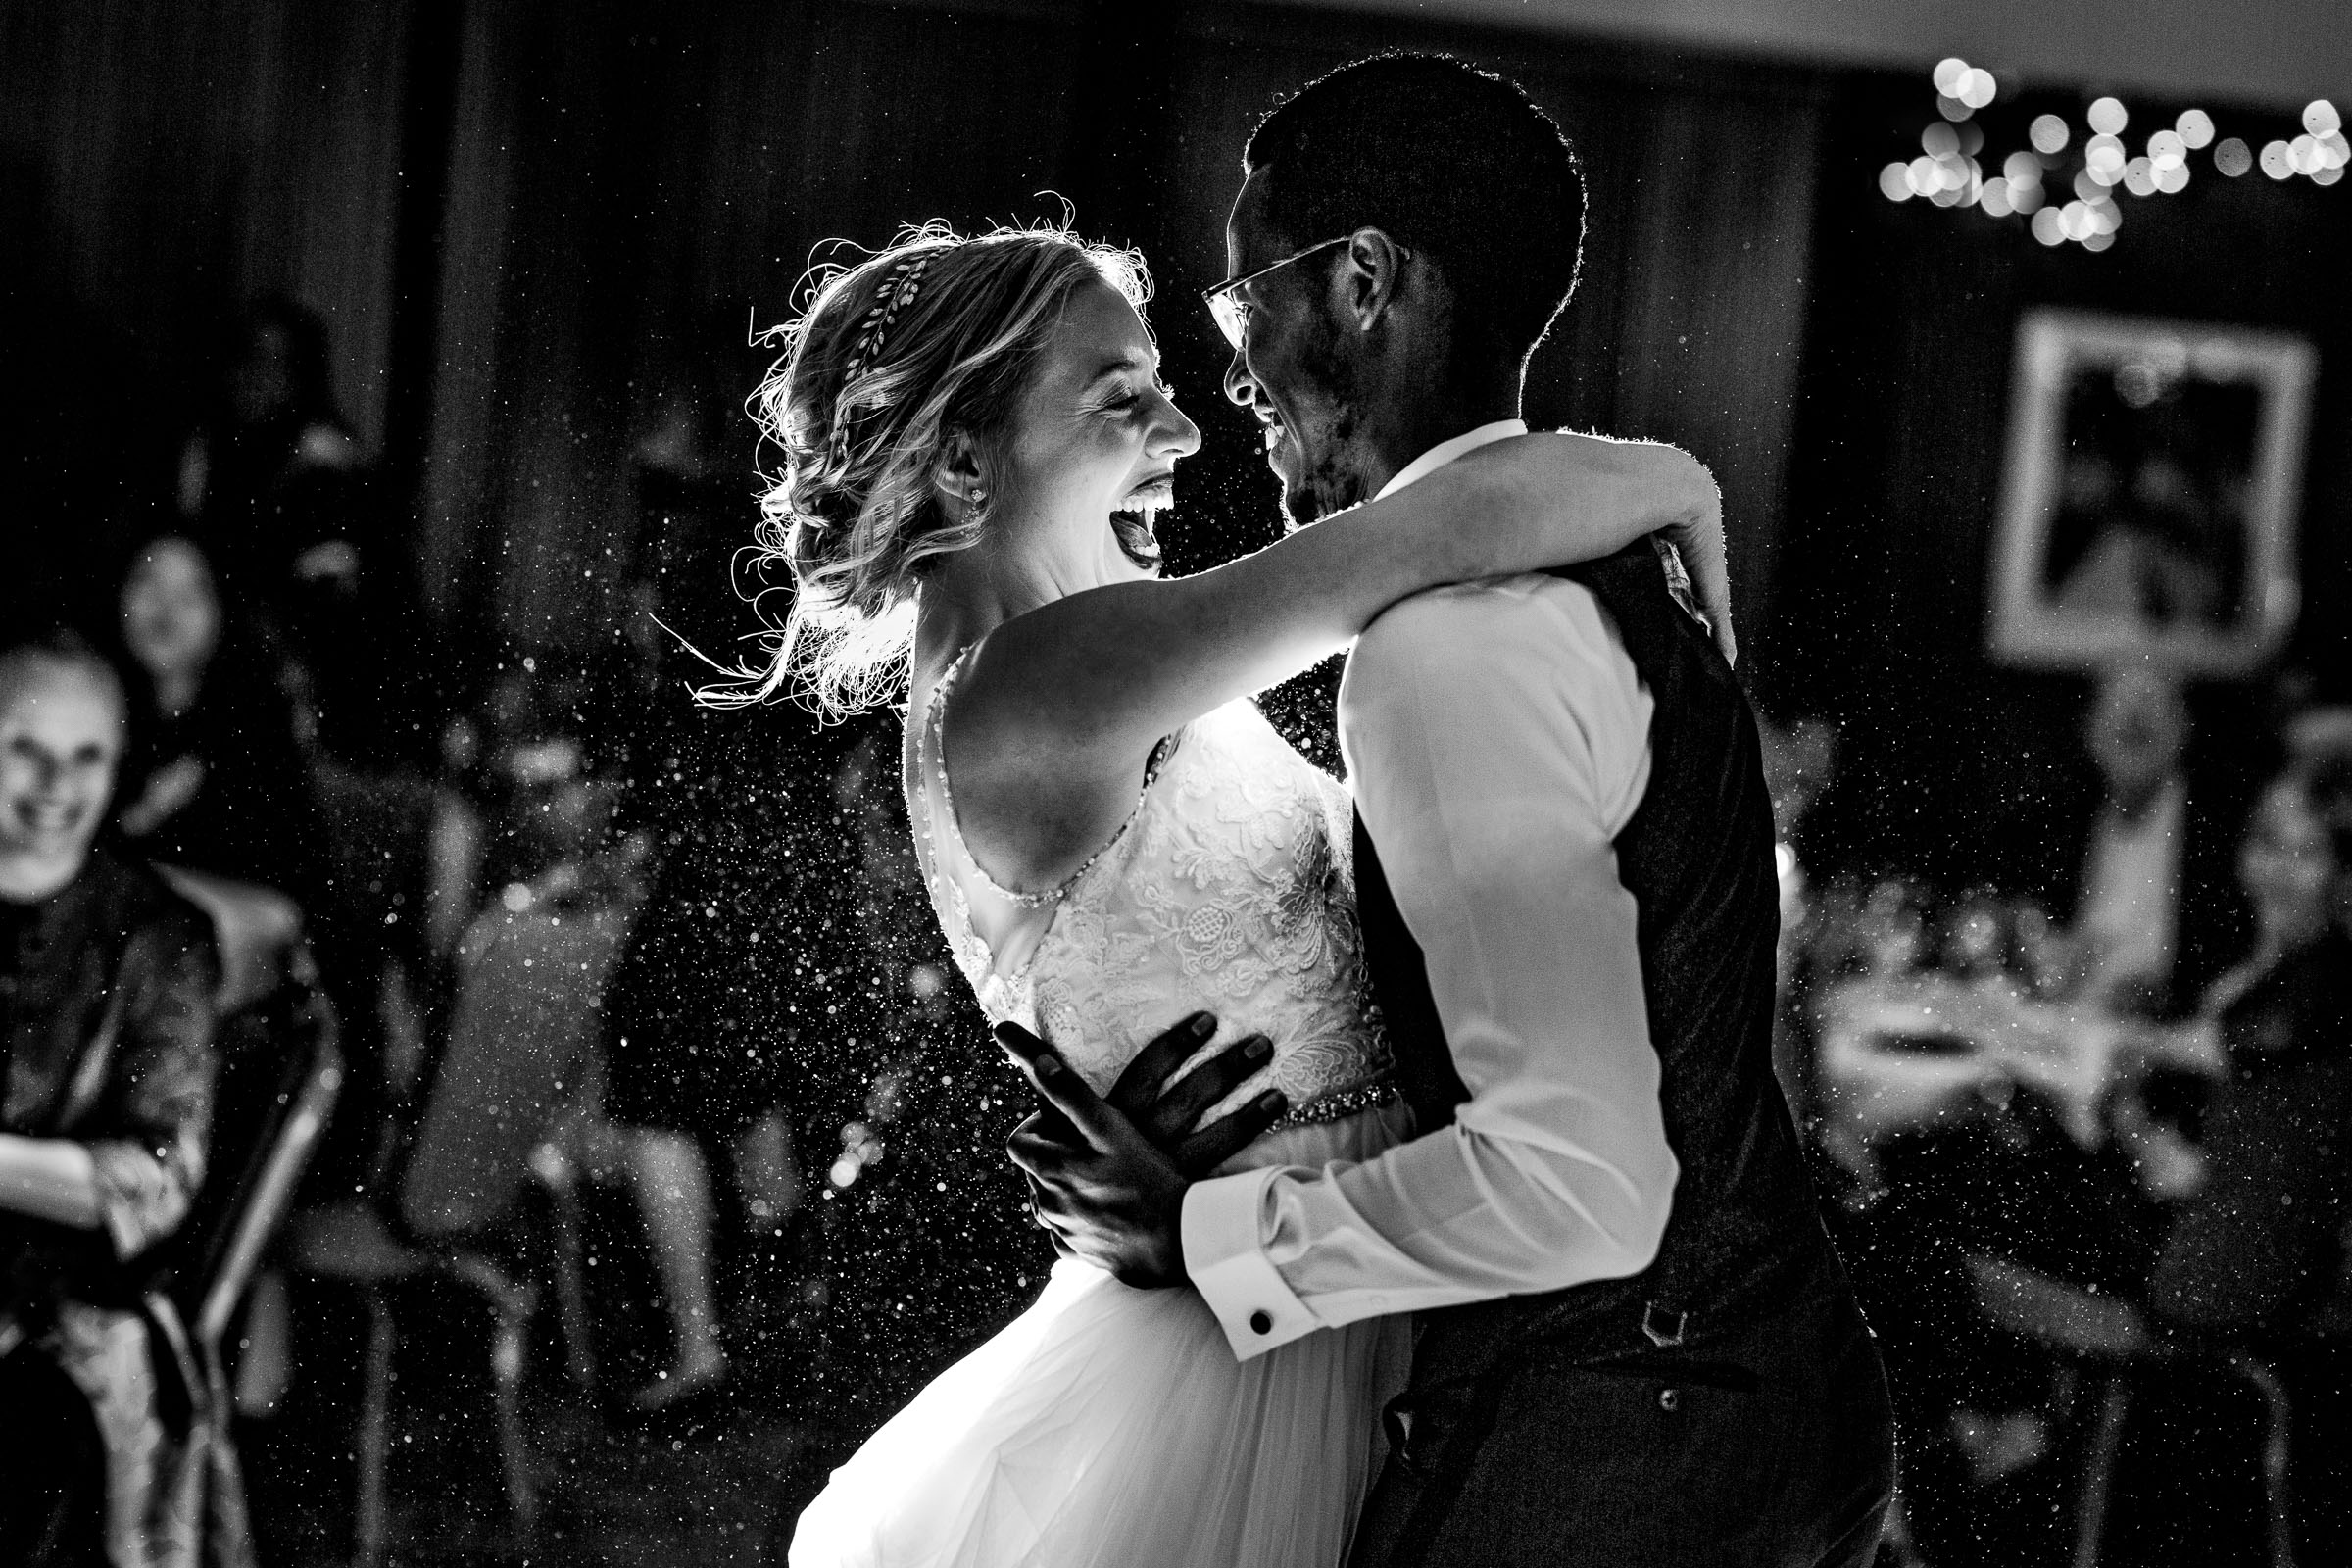 Brilliant moment with bride and groom first dance at their Timberline Lodge wedding